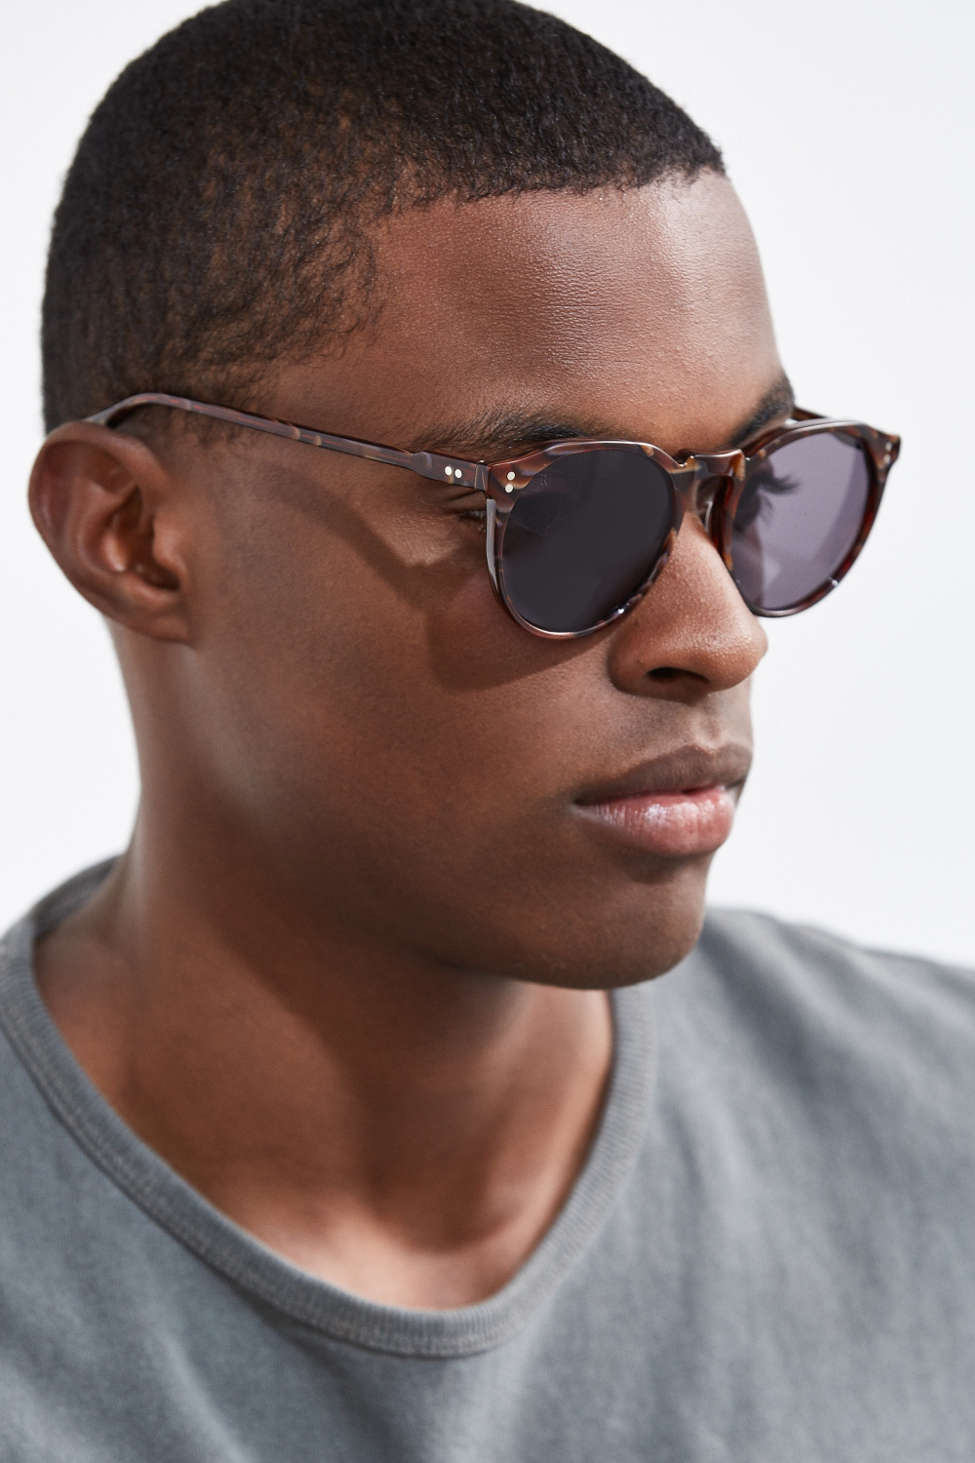 cool men's sunglasses